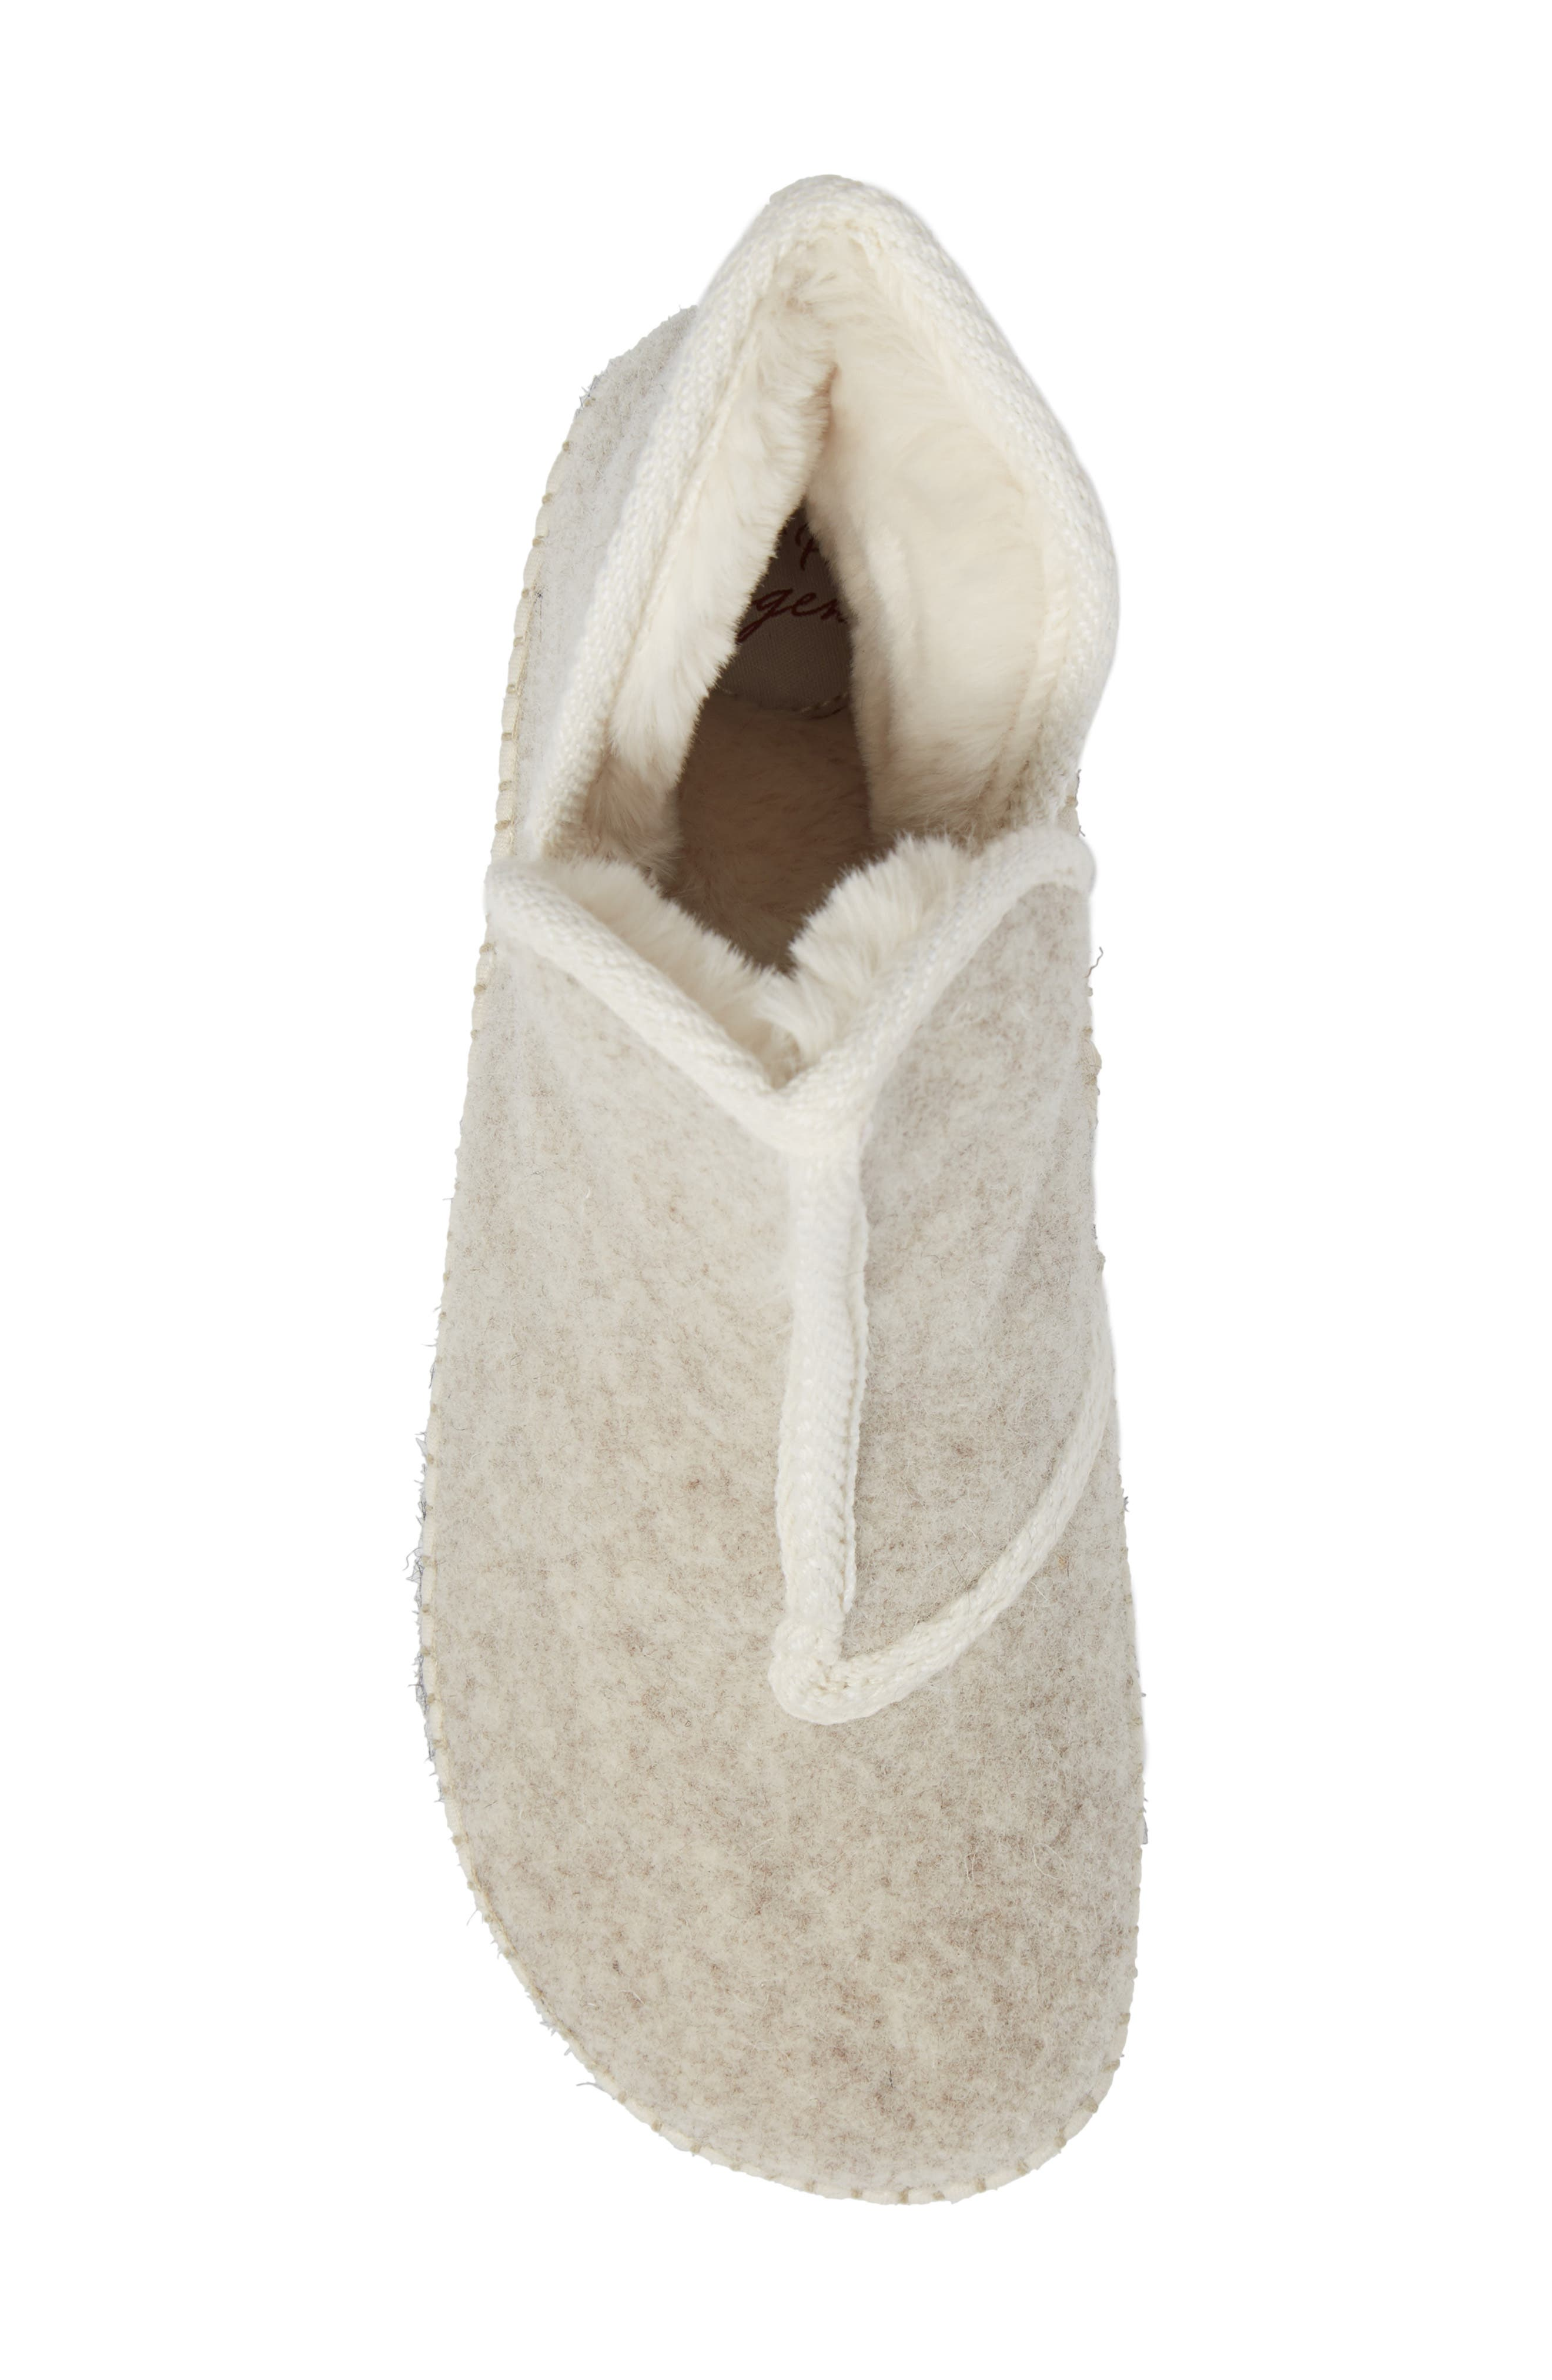 Espadrille Platform Bootie with Faux Fur Lining,                             Alternate thumbnail 5, color,                             ECRU FELT